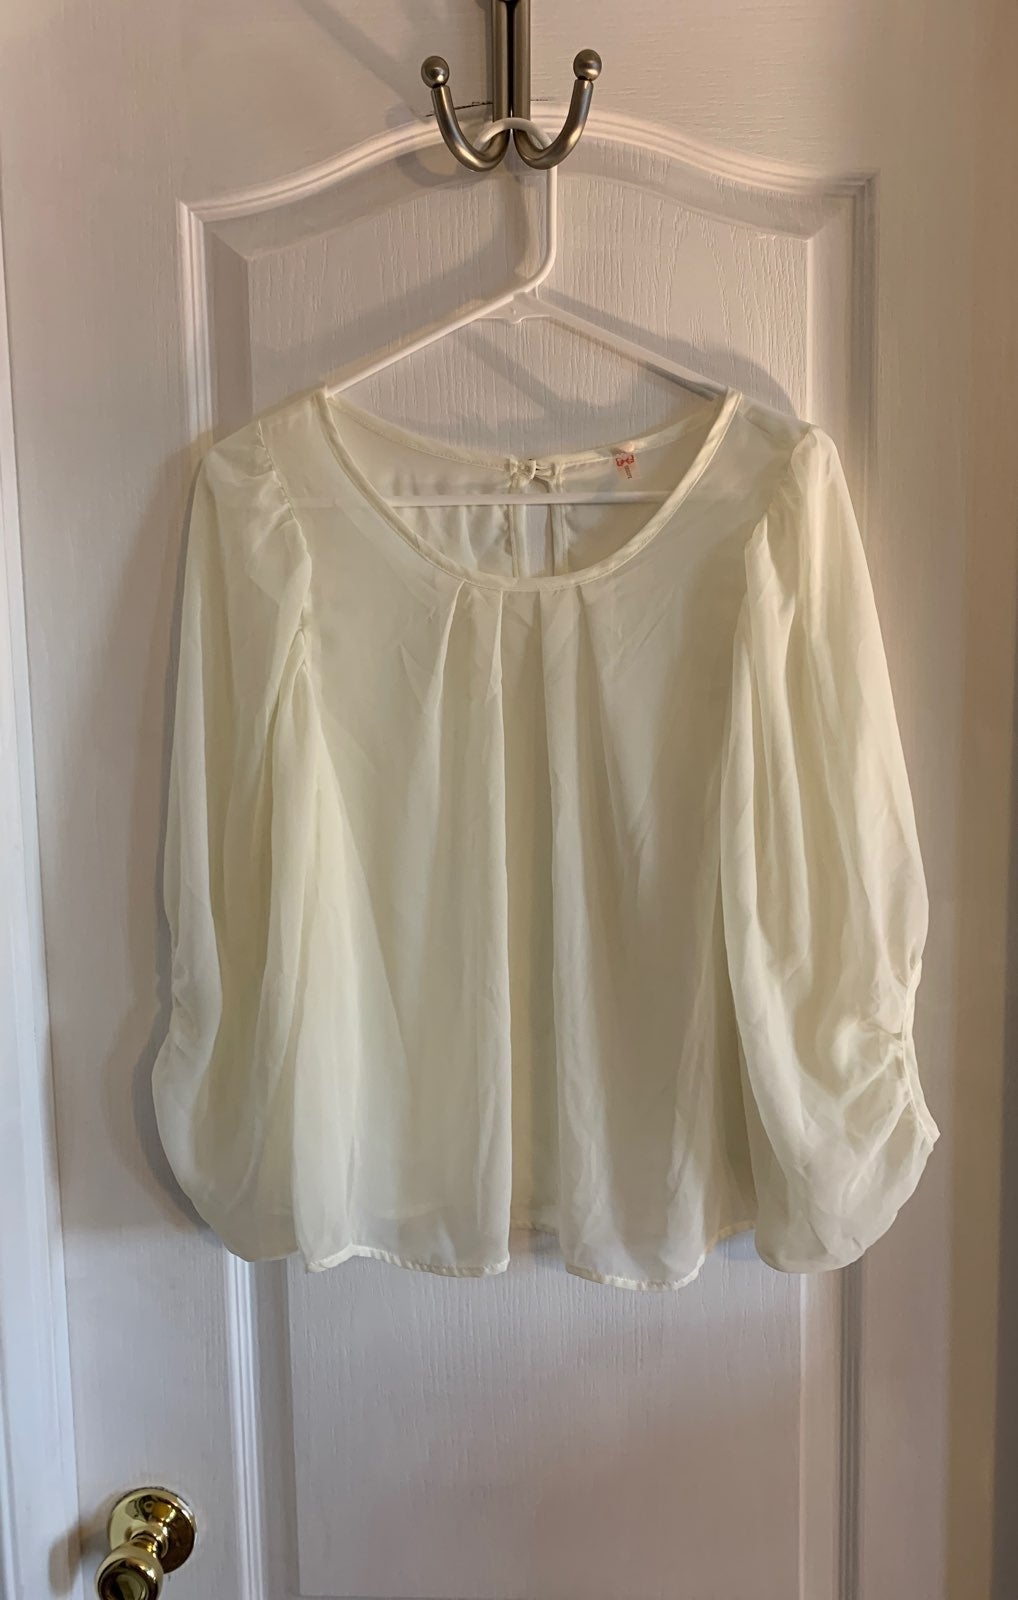 Cocolove sheer blouse.